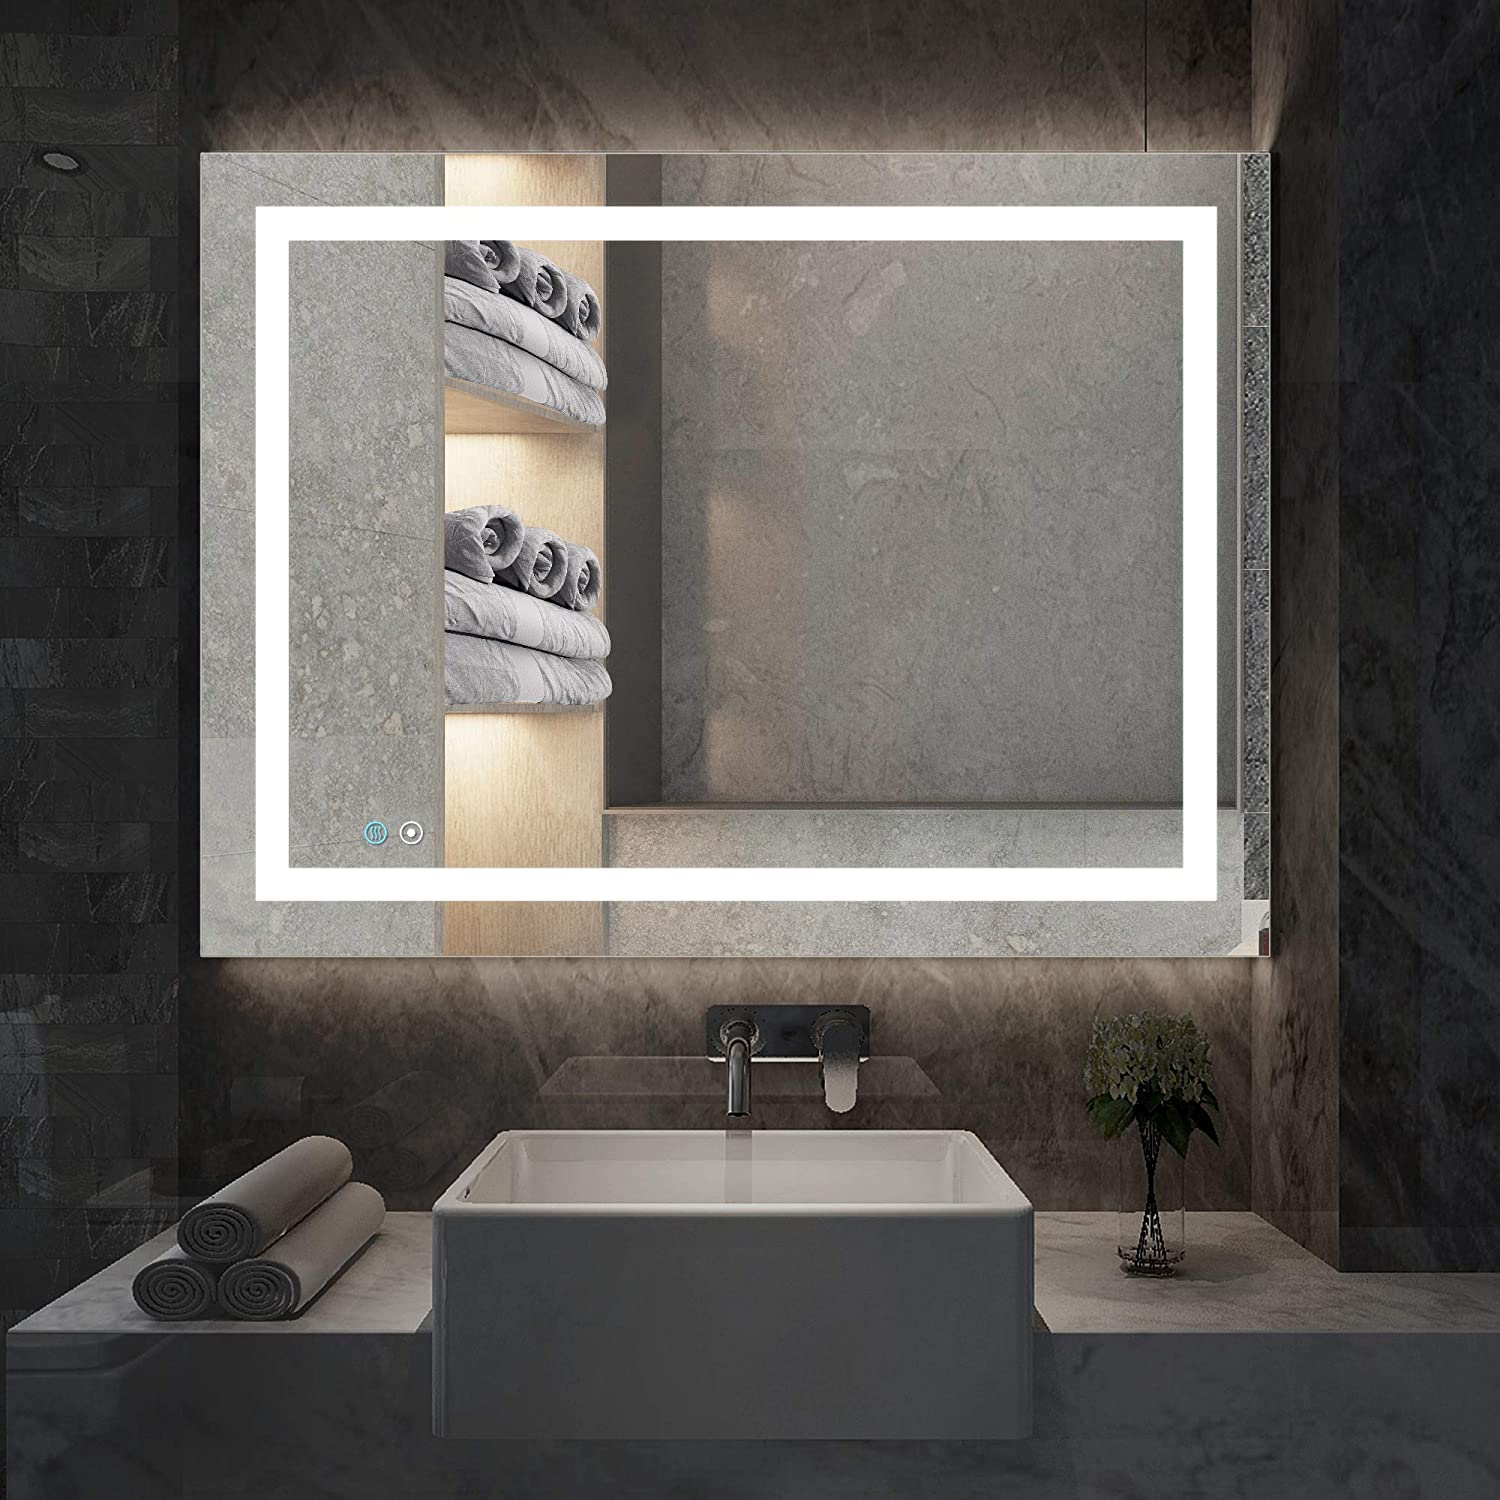 Amazon Com Illucid Led Bathroom Mirror Wall Mounted 32x24 Inch Dimmer Defogger Crystal Clear Shatterproof Vertical Horizone Flicking Free Hard Wired Led Vanity Mirror Furniture Decor